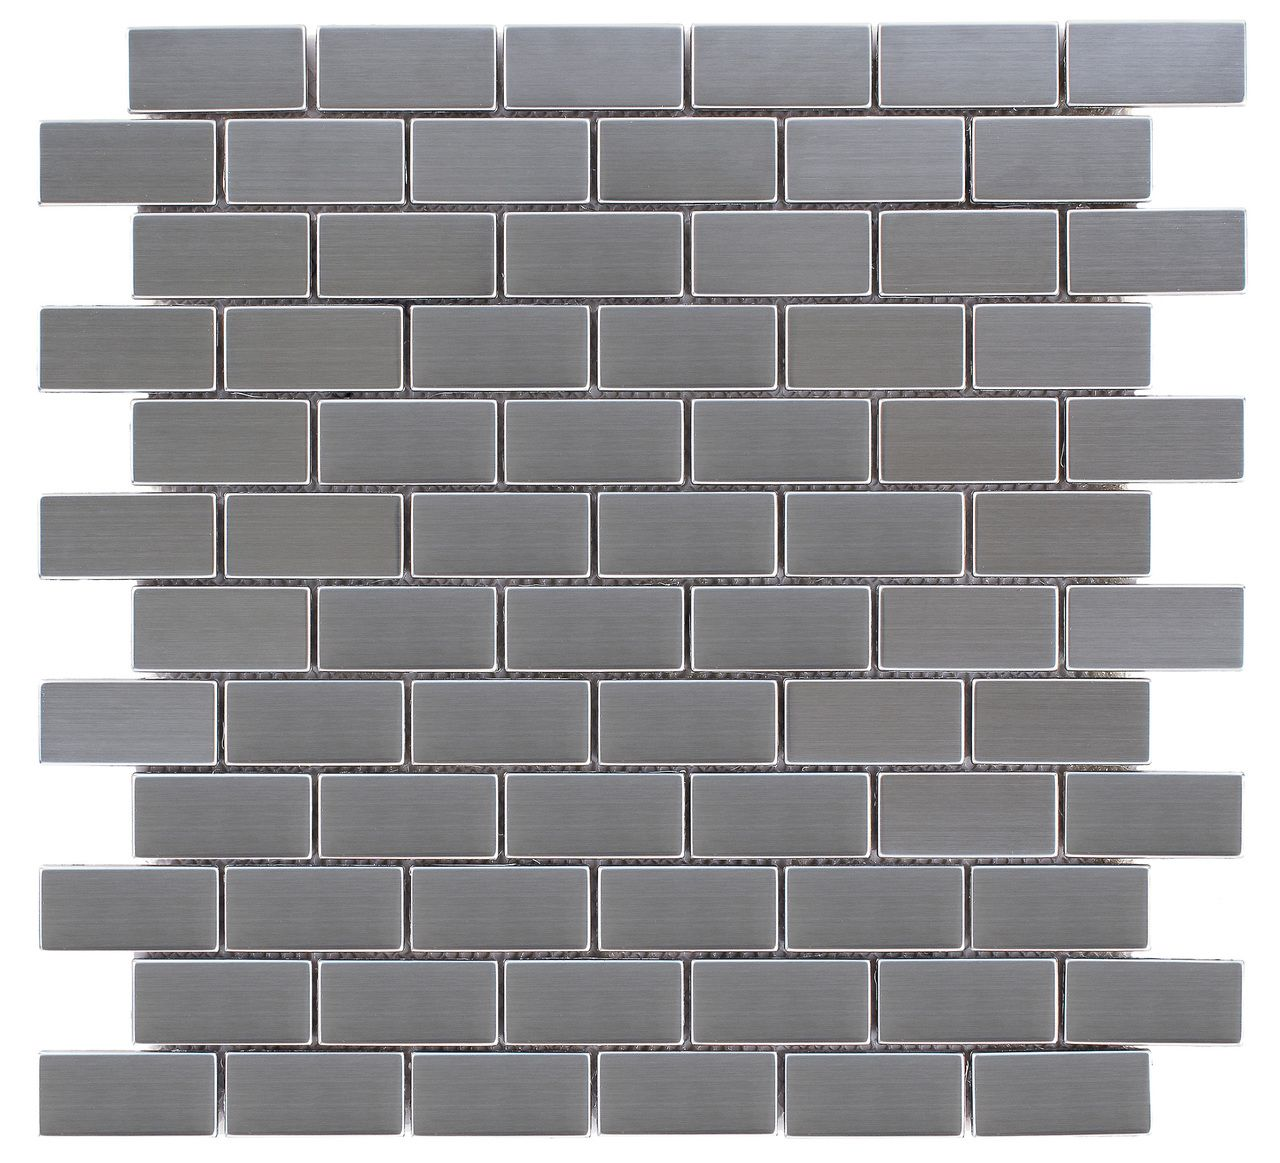 Stainless steel subway tile 2x4 subway tiles stainless steel stainless steel subway tile 2x4 dailygadgetfo Gallery